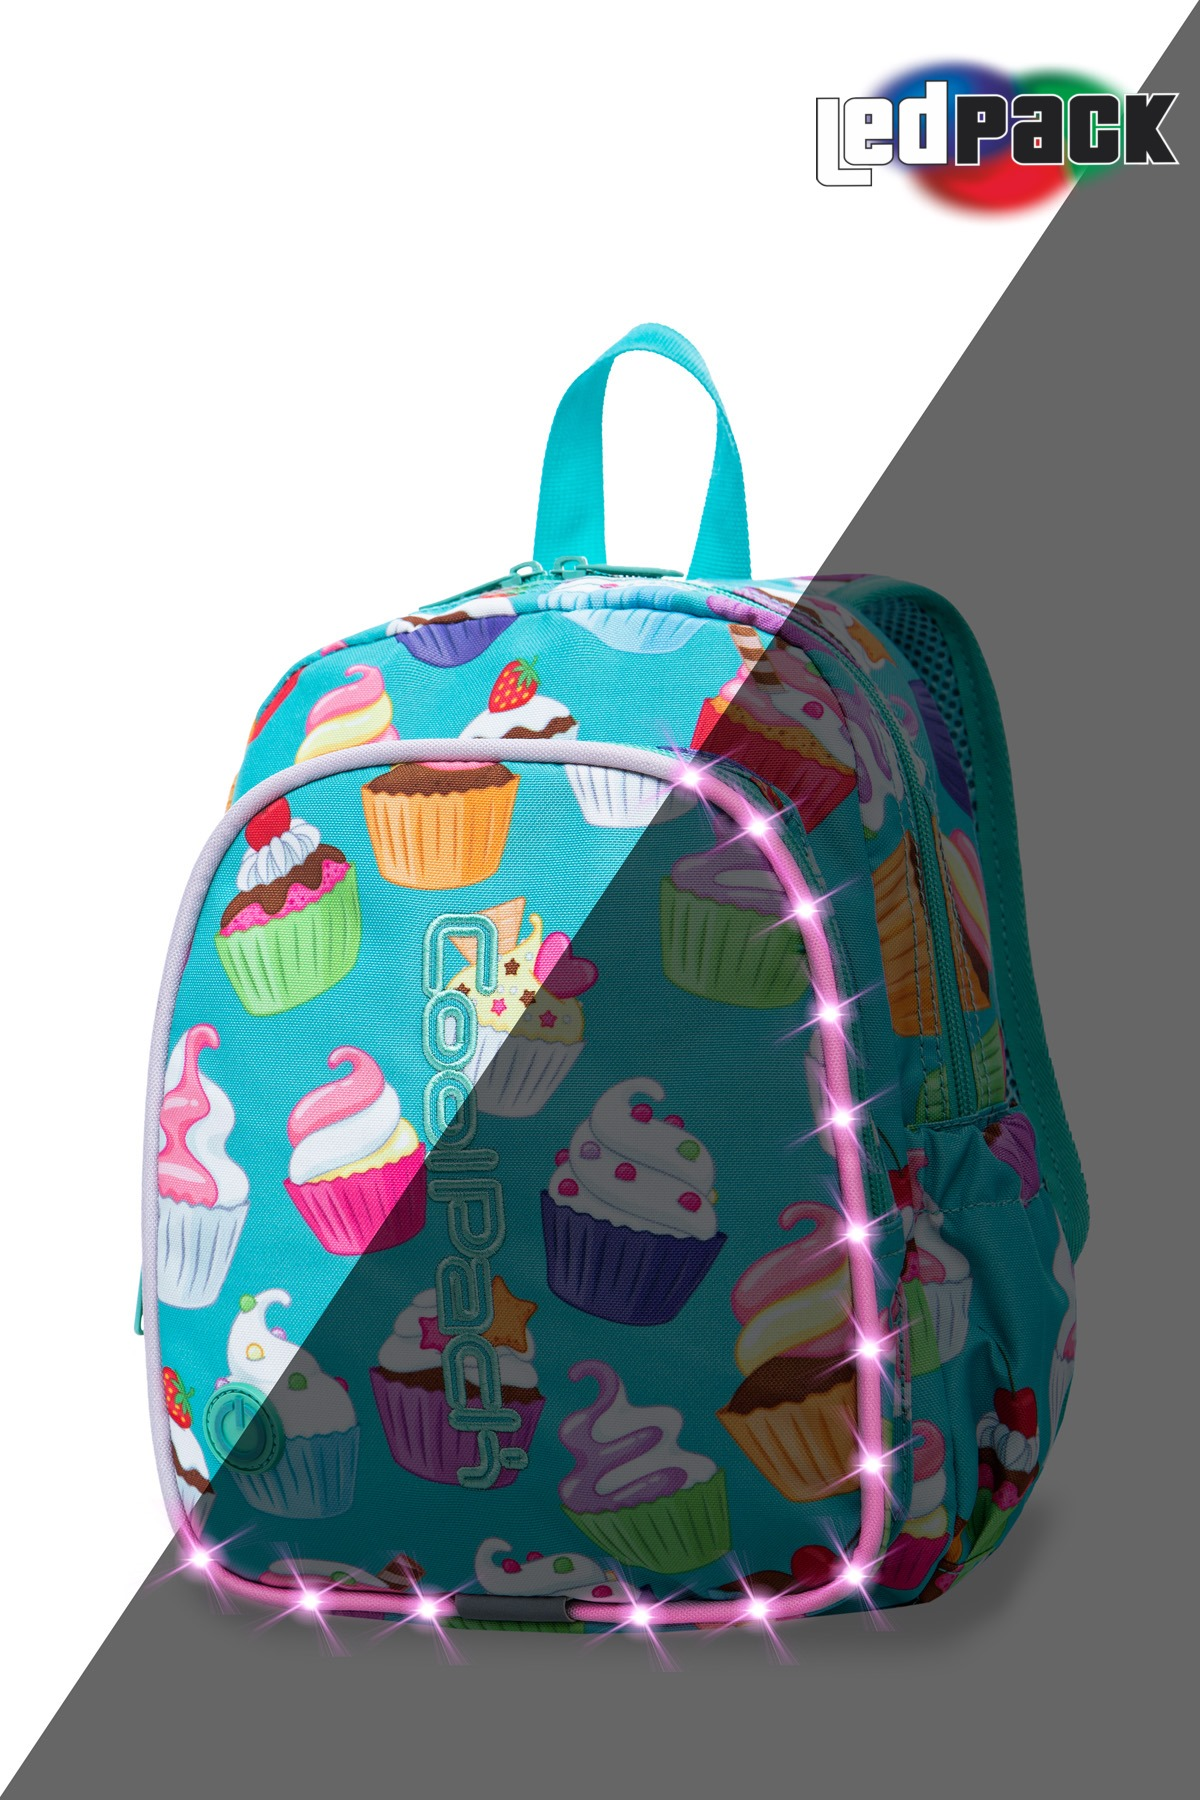 Coolpack - bobby - kids backpack - led cupcakes